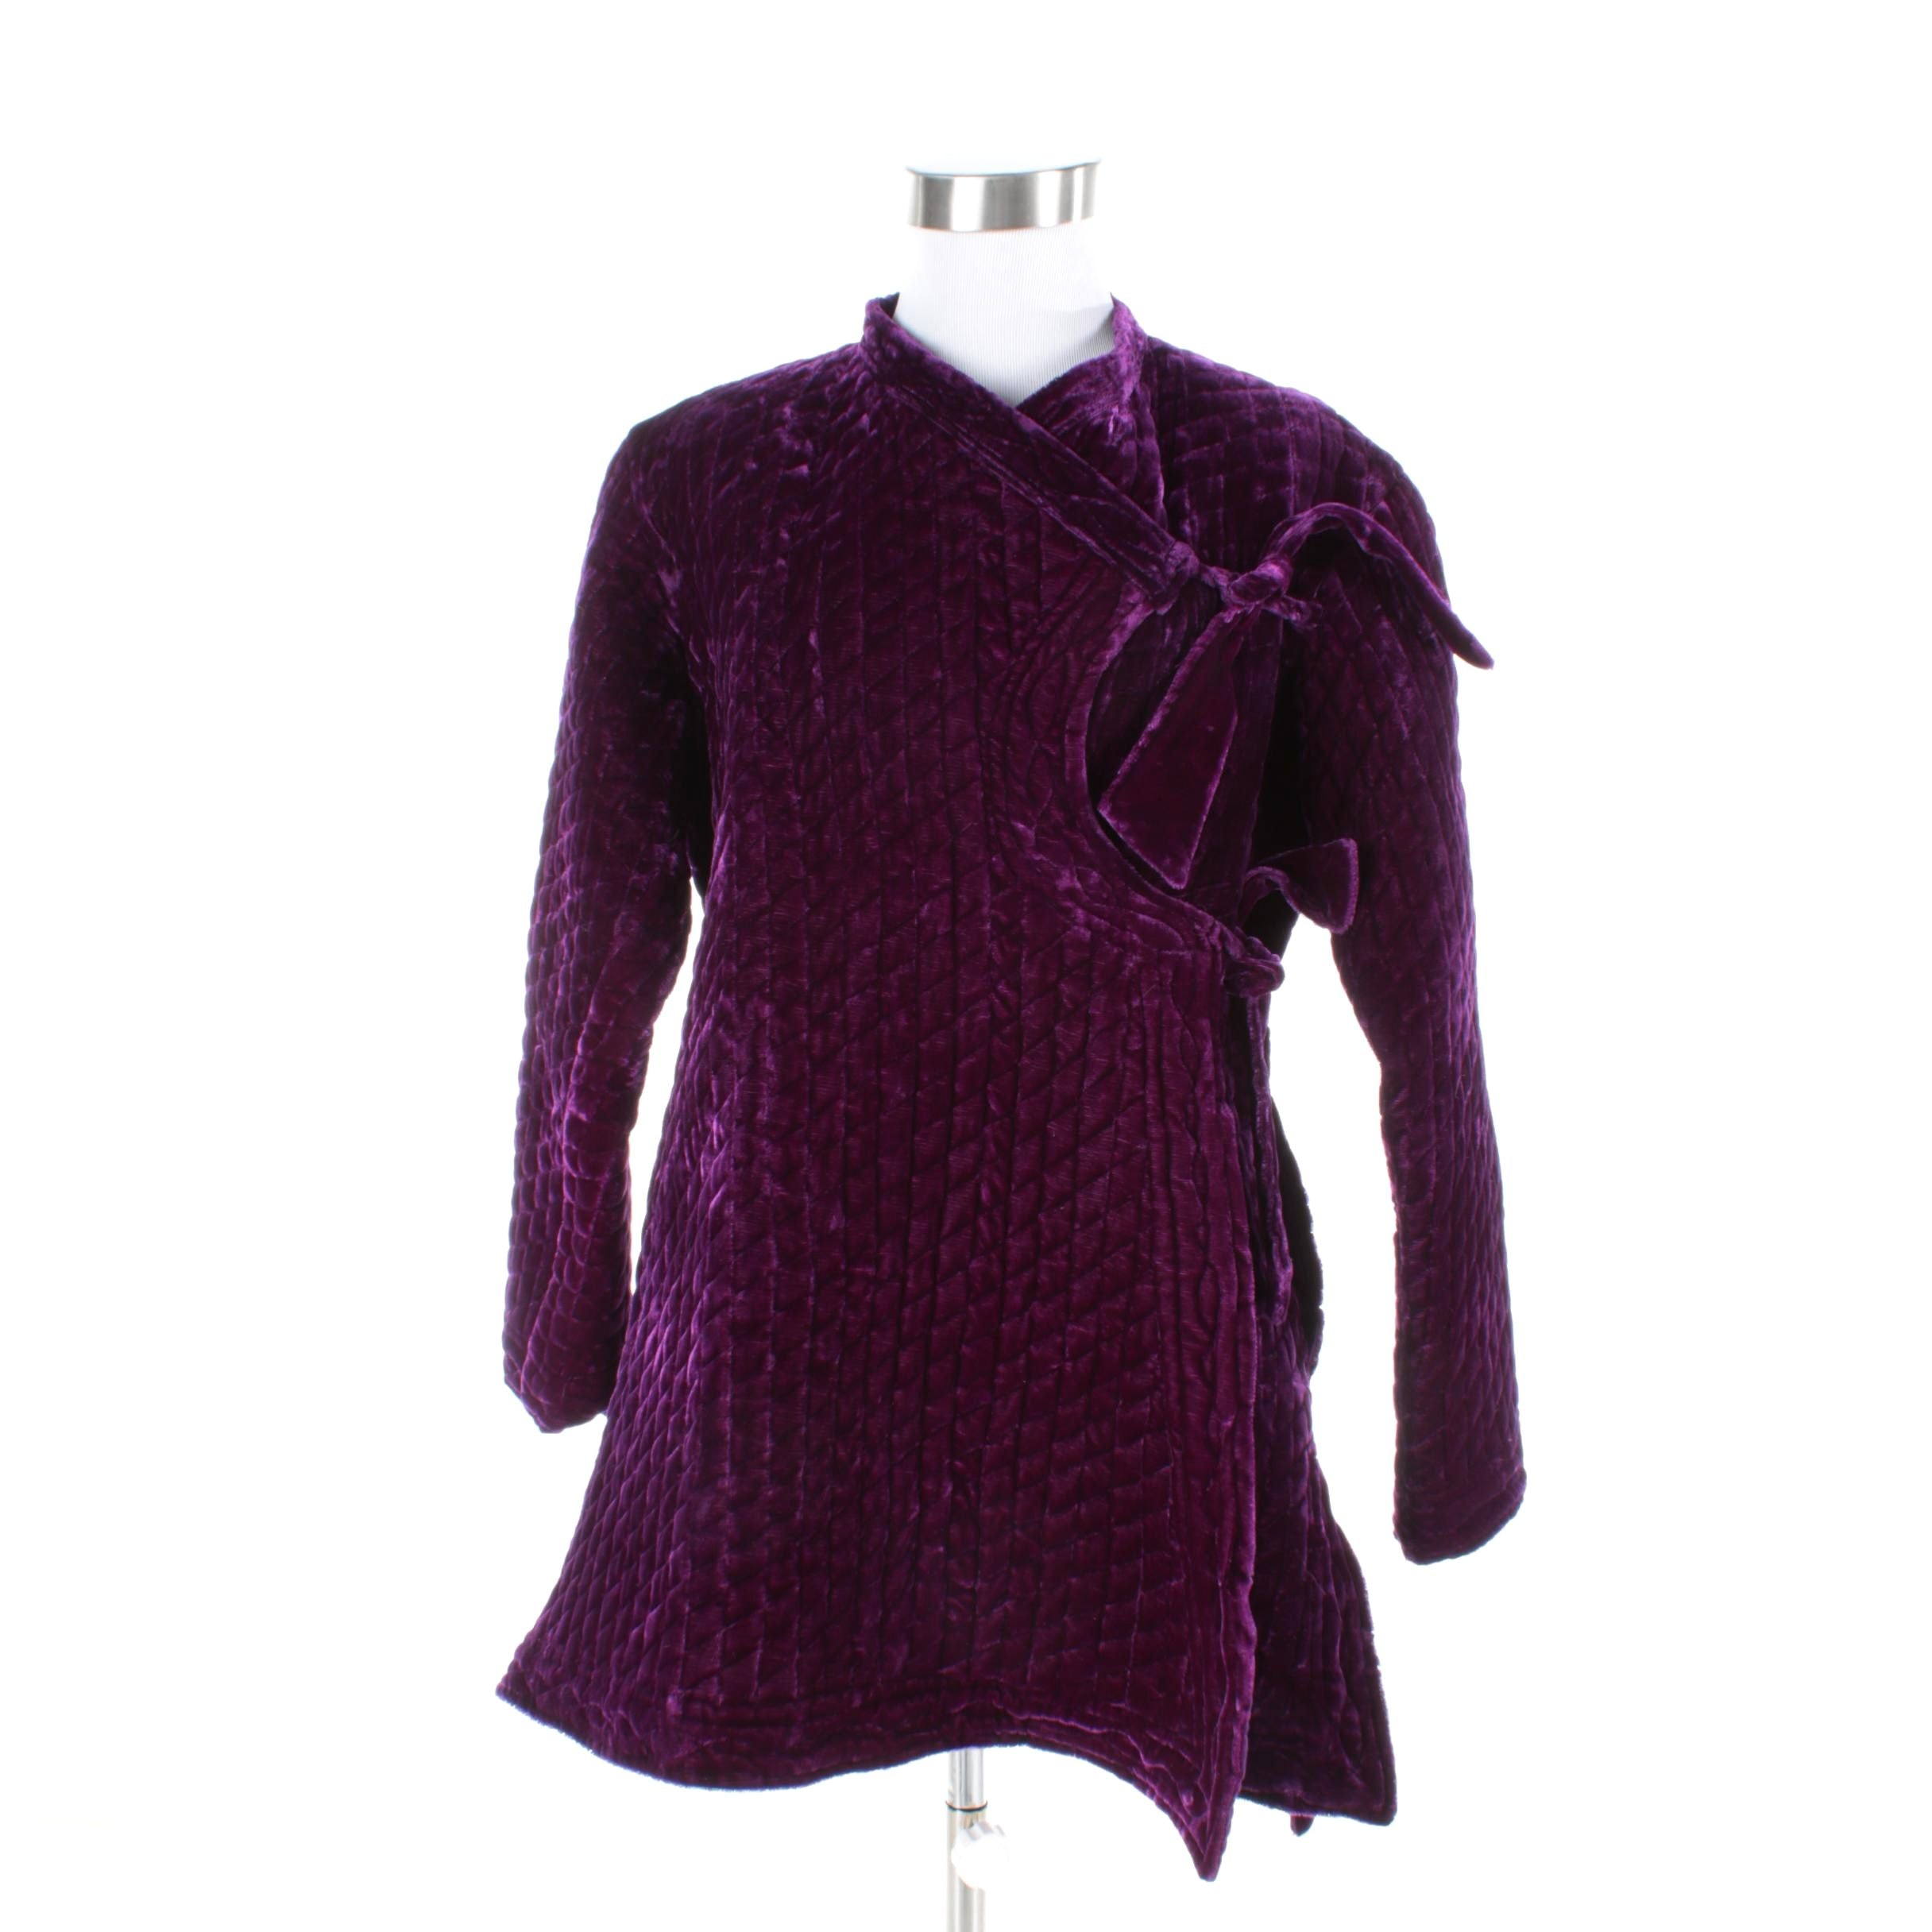 Women's Purple Quilted Velvet Jacket